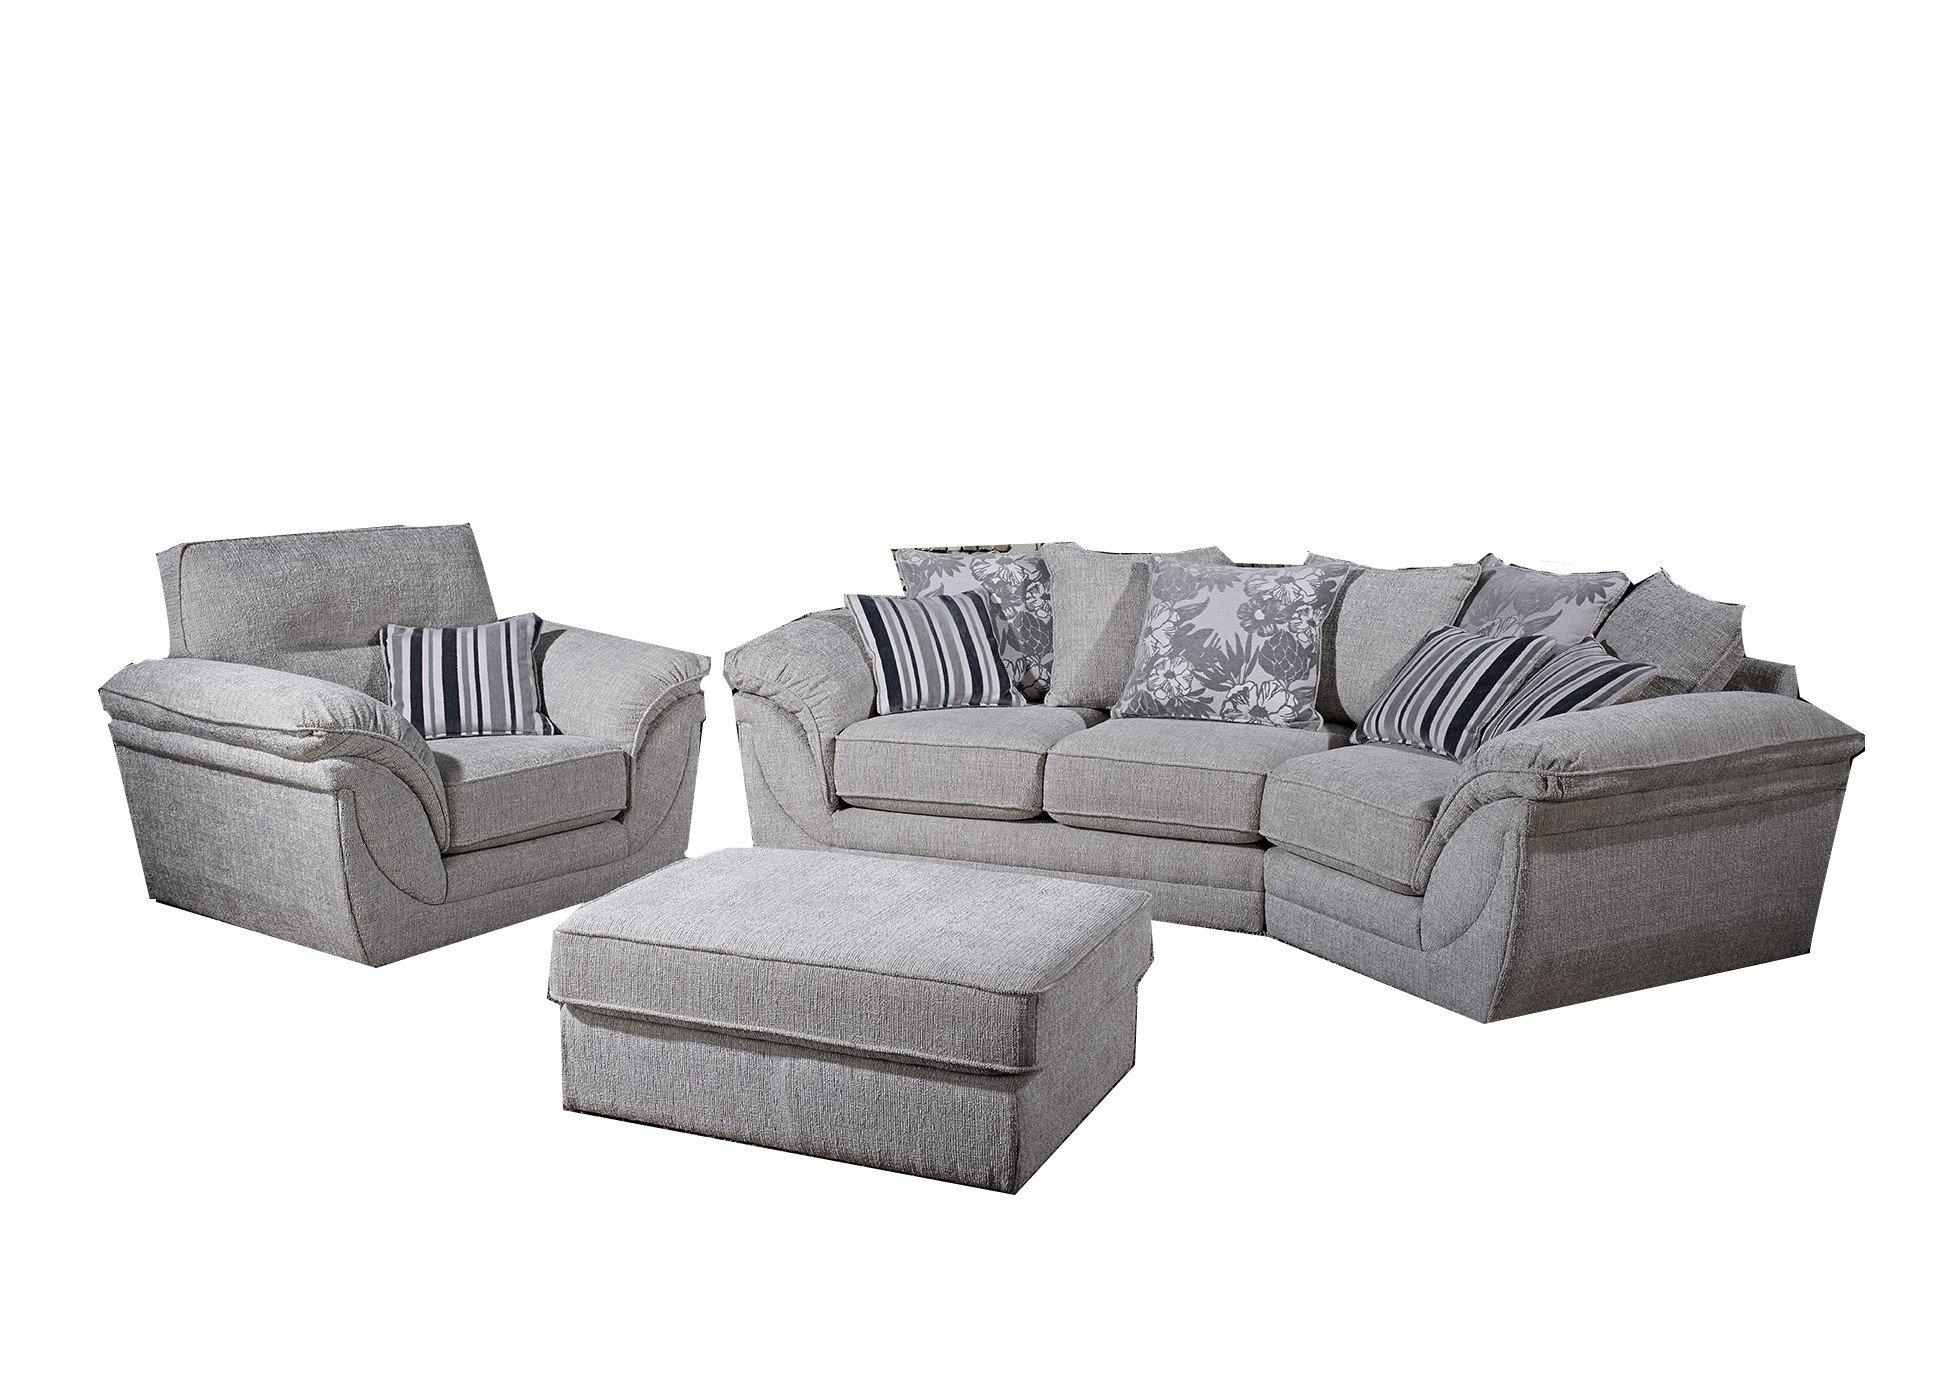 Sofas Center : 40 Magnificent Serta Convertible Sofa Image Concept With Snuggle Sofas (View 2 of 20)